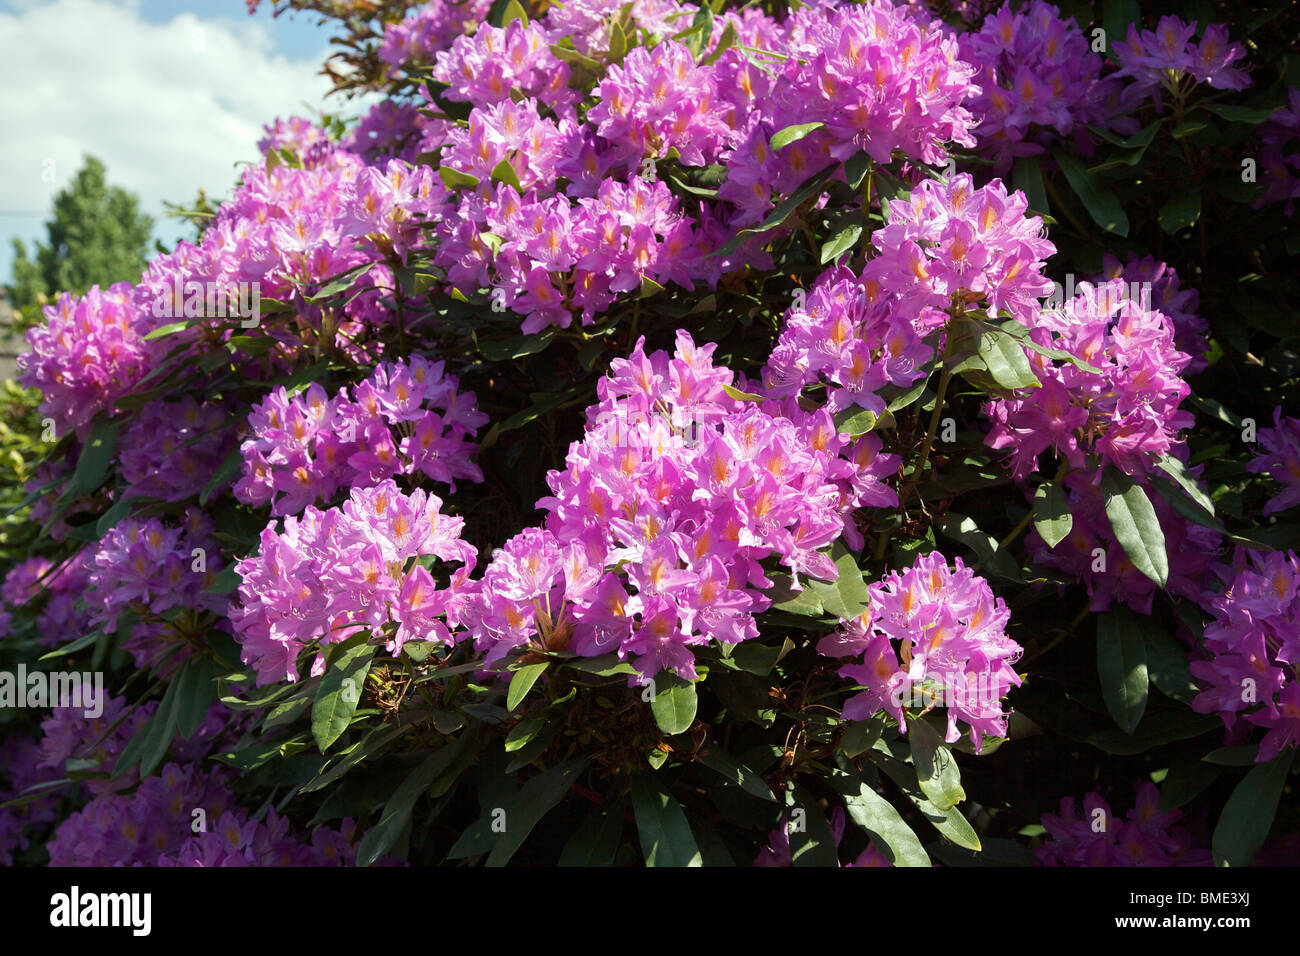 Purple rhododendron bush with flowers Stock Photo